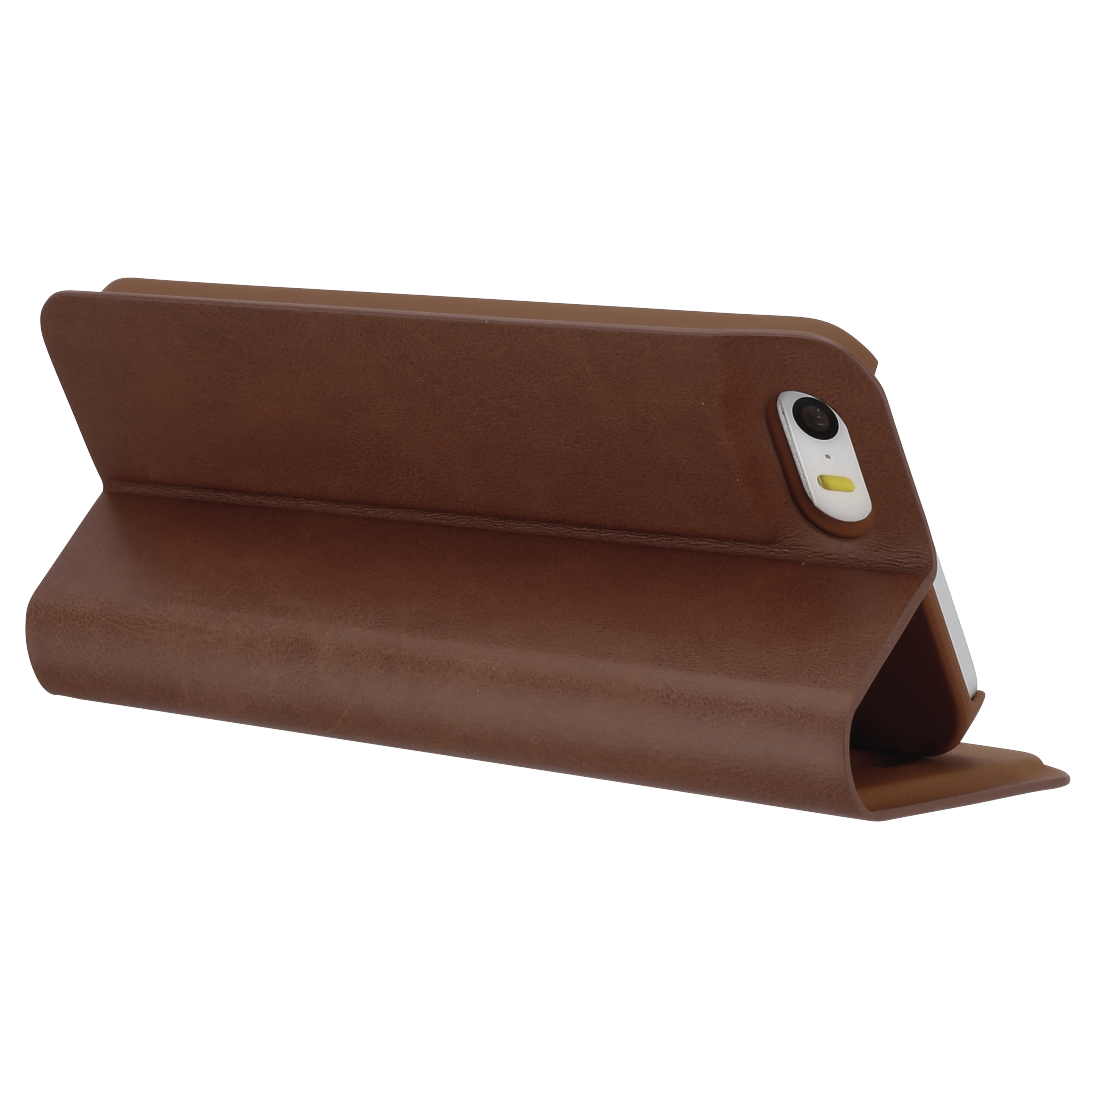 "abx3 High-Res Image 3 - Hama, Étui portefeuille ""Guard Pro"" pour Apple iPhone 5/5s/SE, marron"